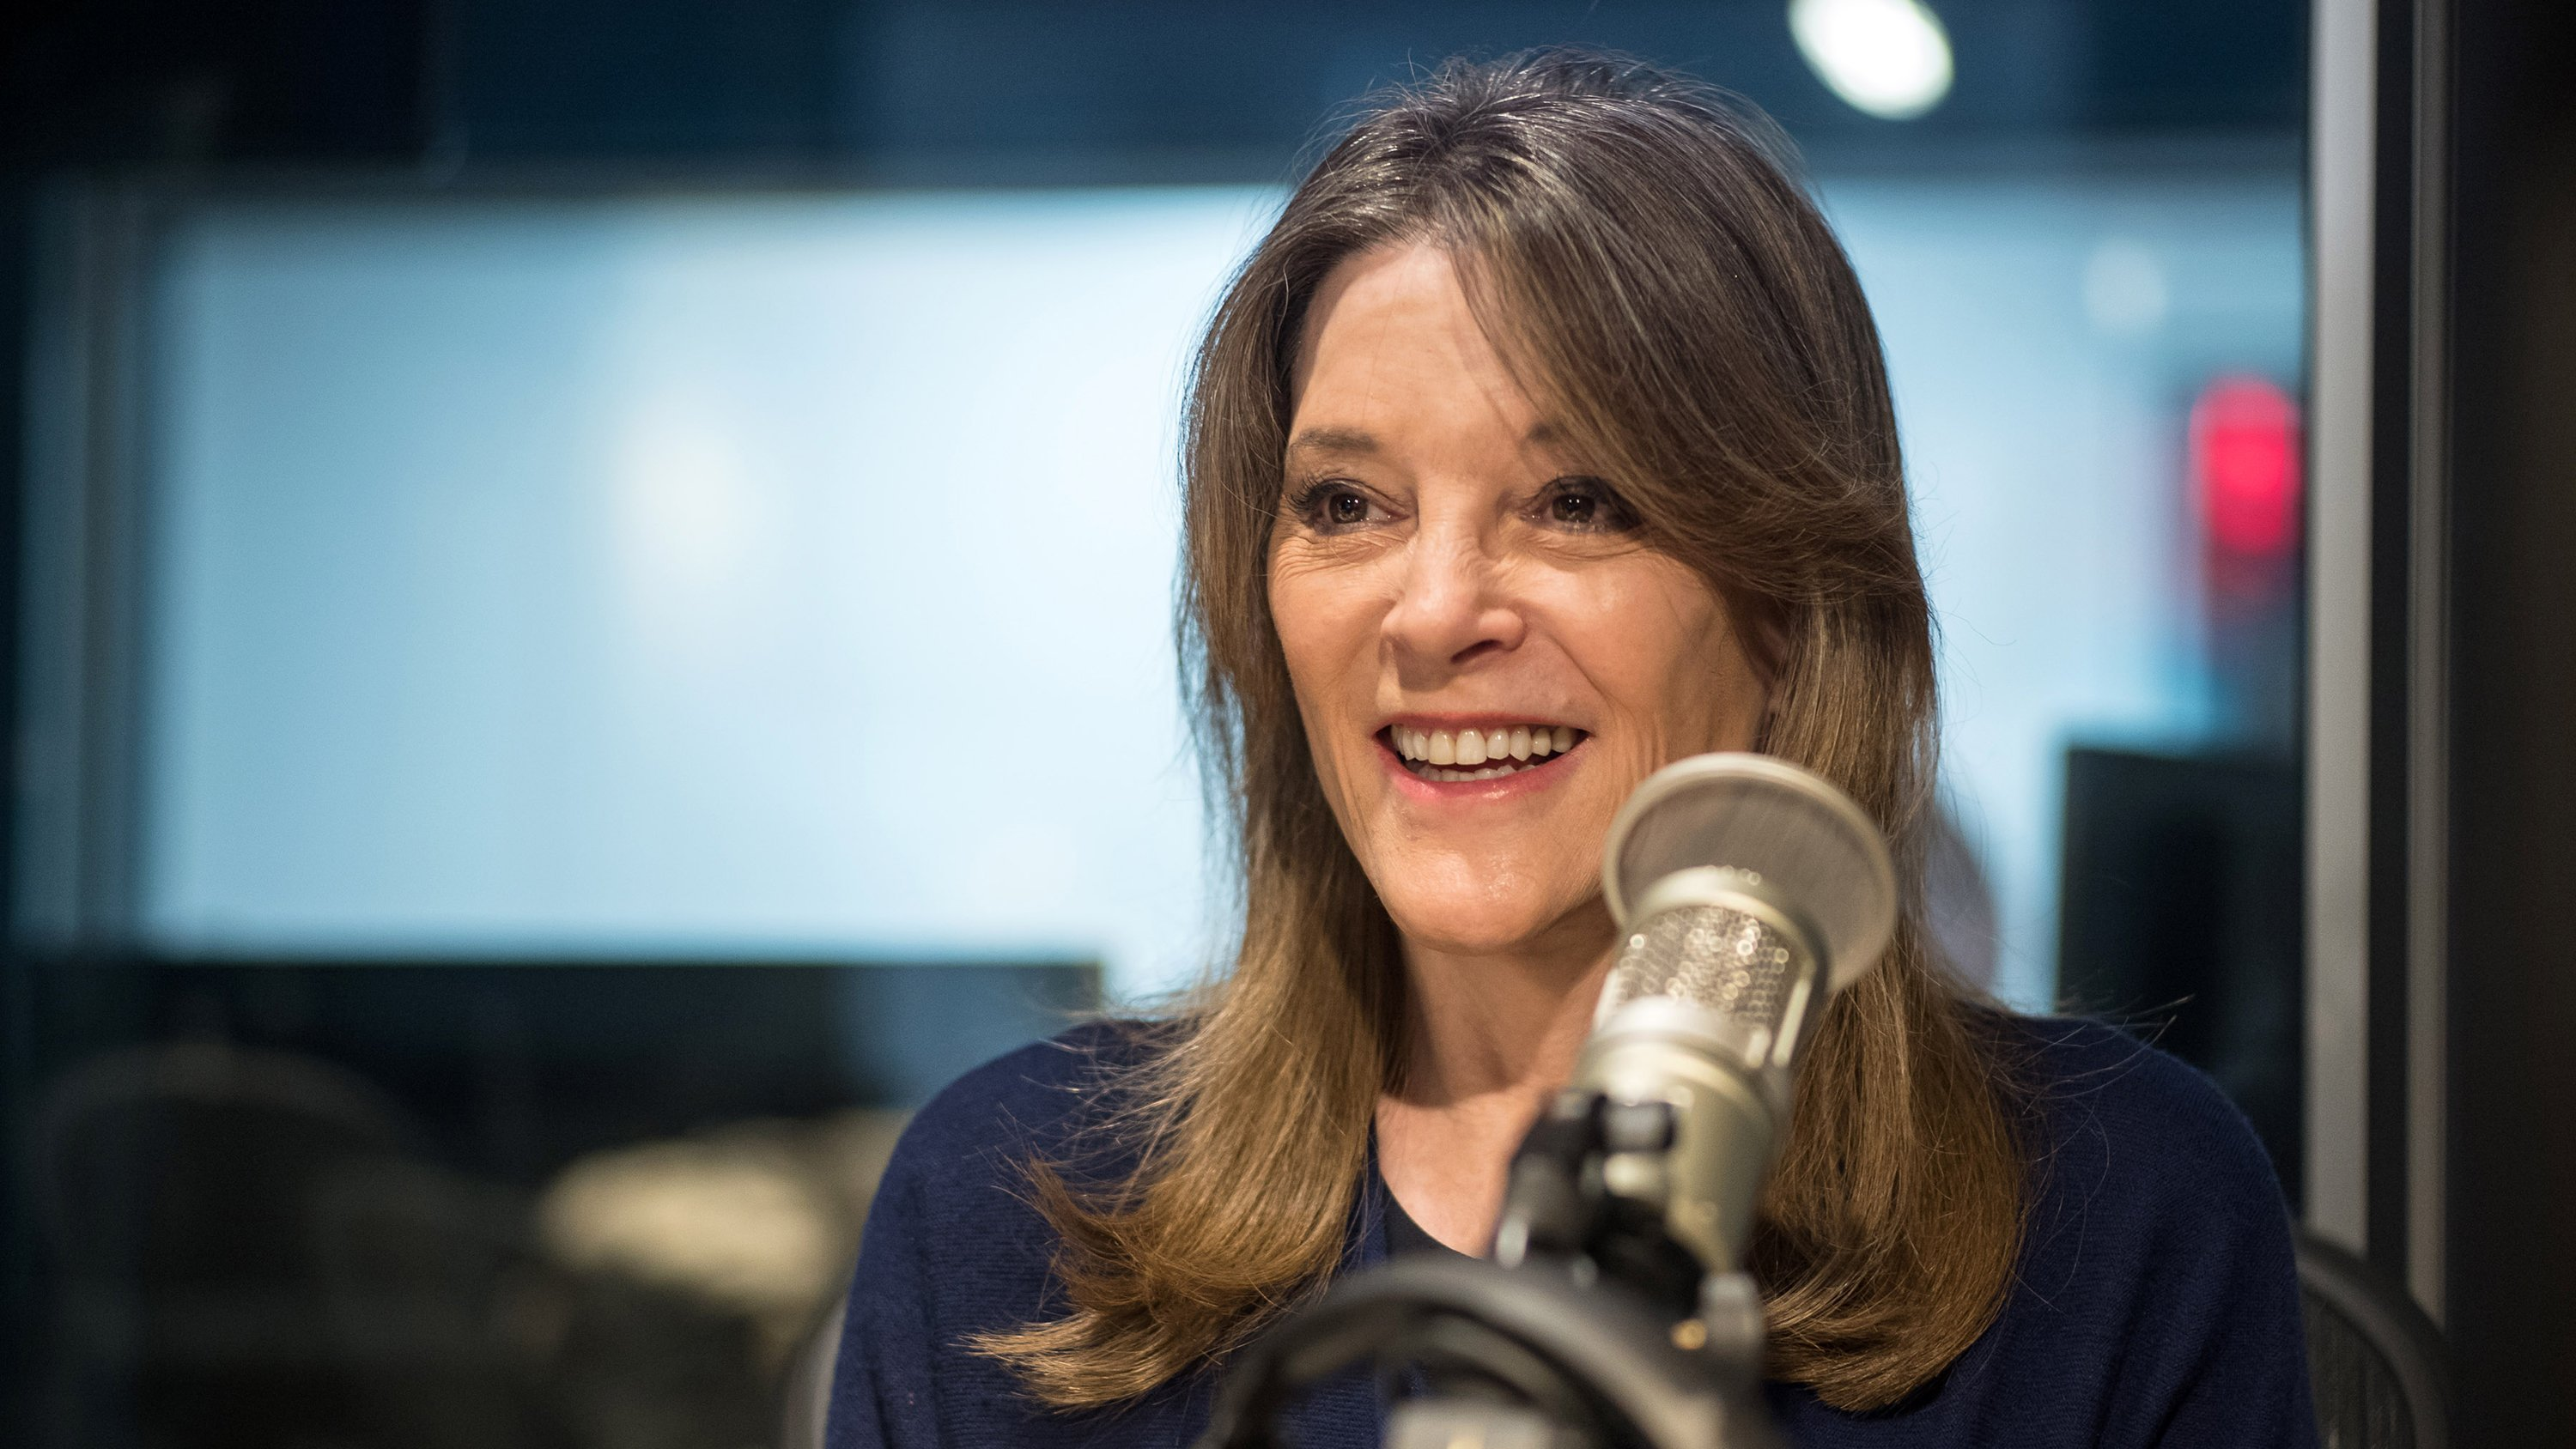 Marianne Williamson entertained 9/11 conspiracy theories in 2012 interview